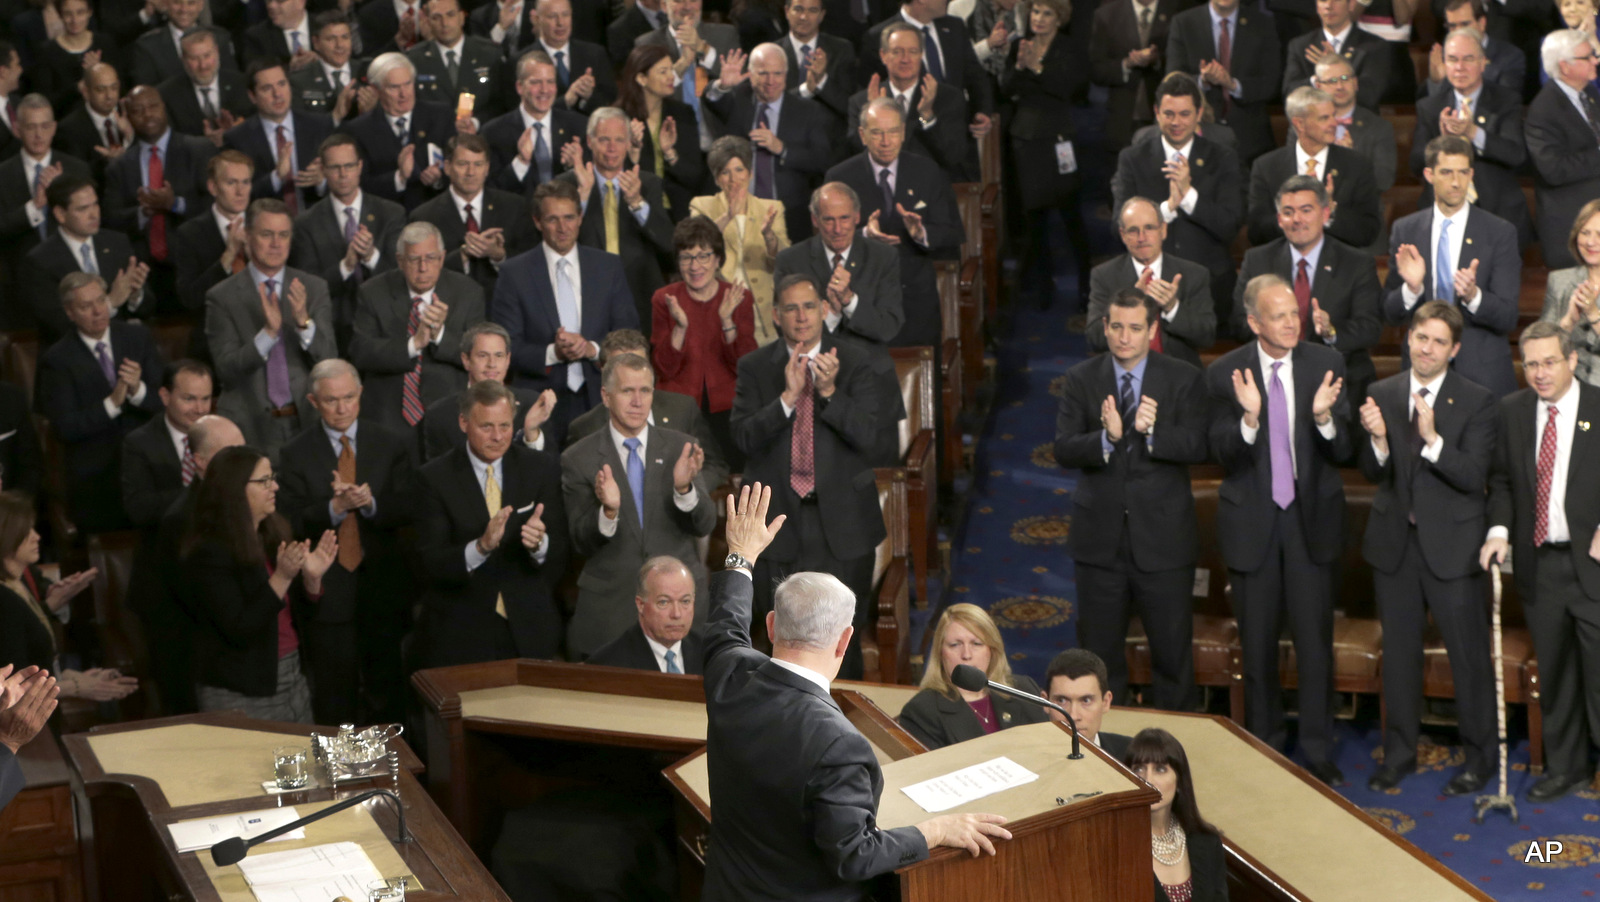 Benjamin Netanyahu waves after speaking before a joint meeting of Congress on Capitol Hil